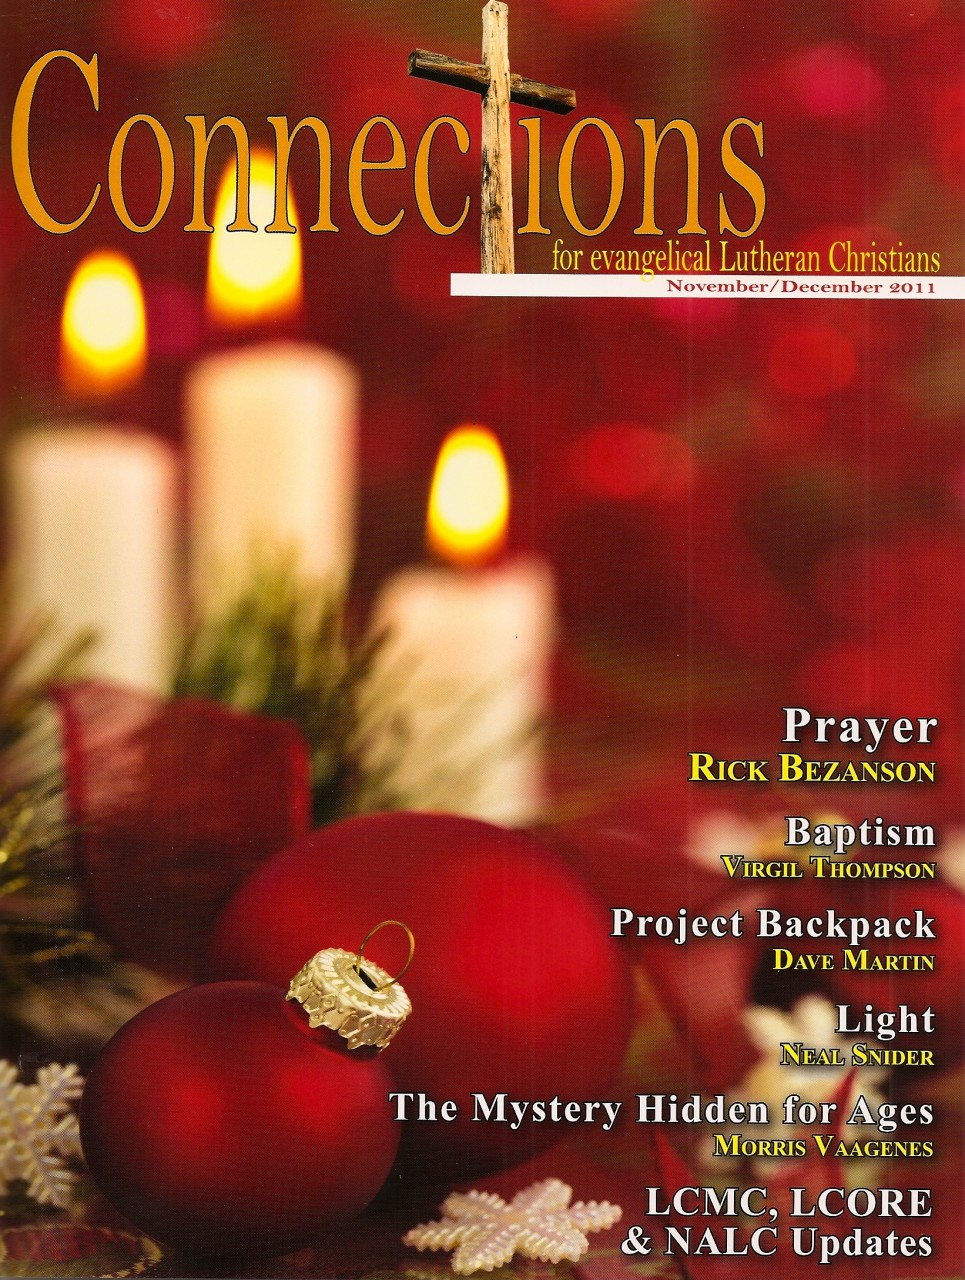 Connections Back Issue Nov/Dec 2011 P-B116